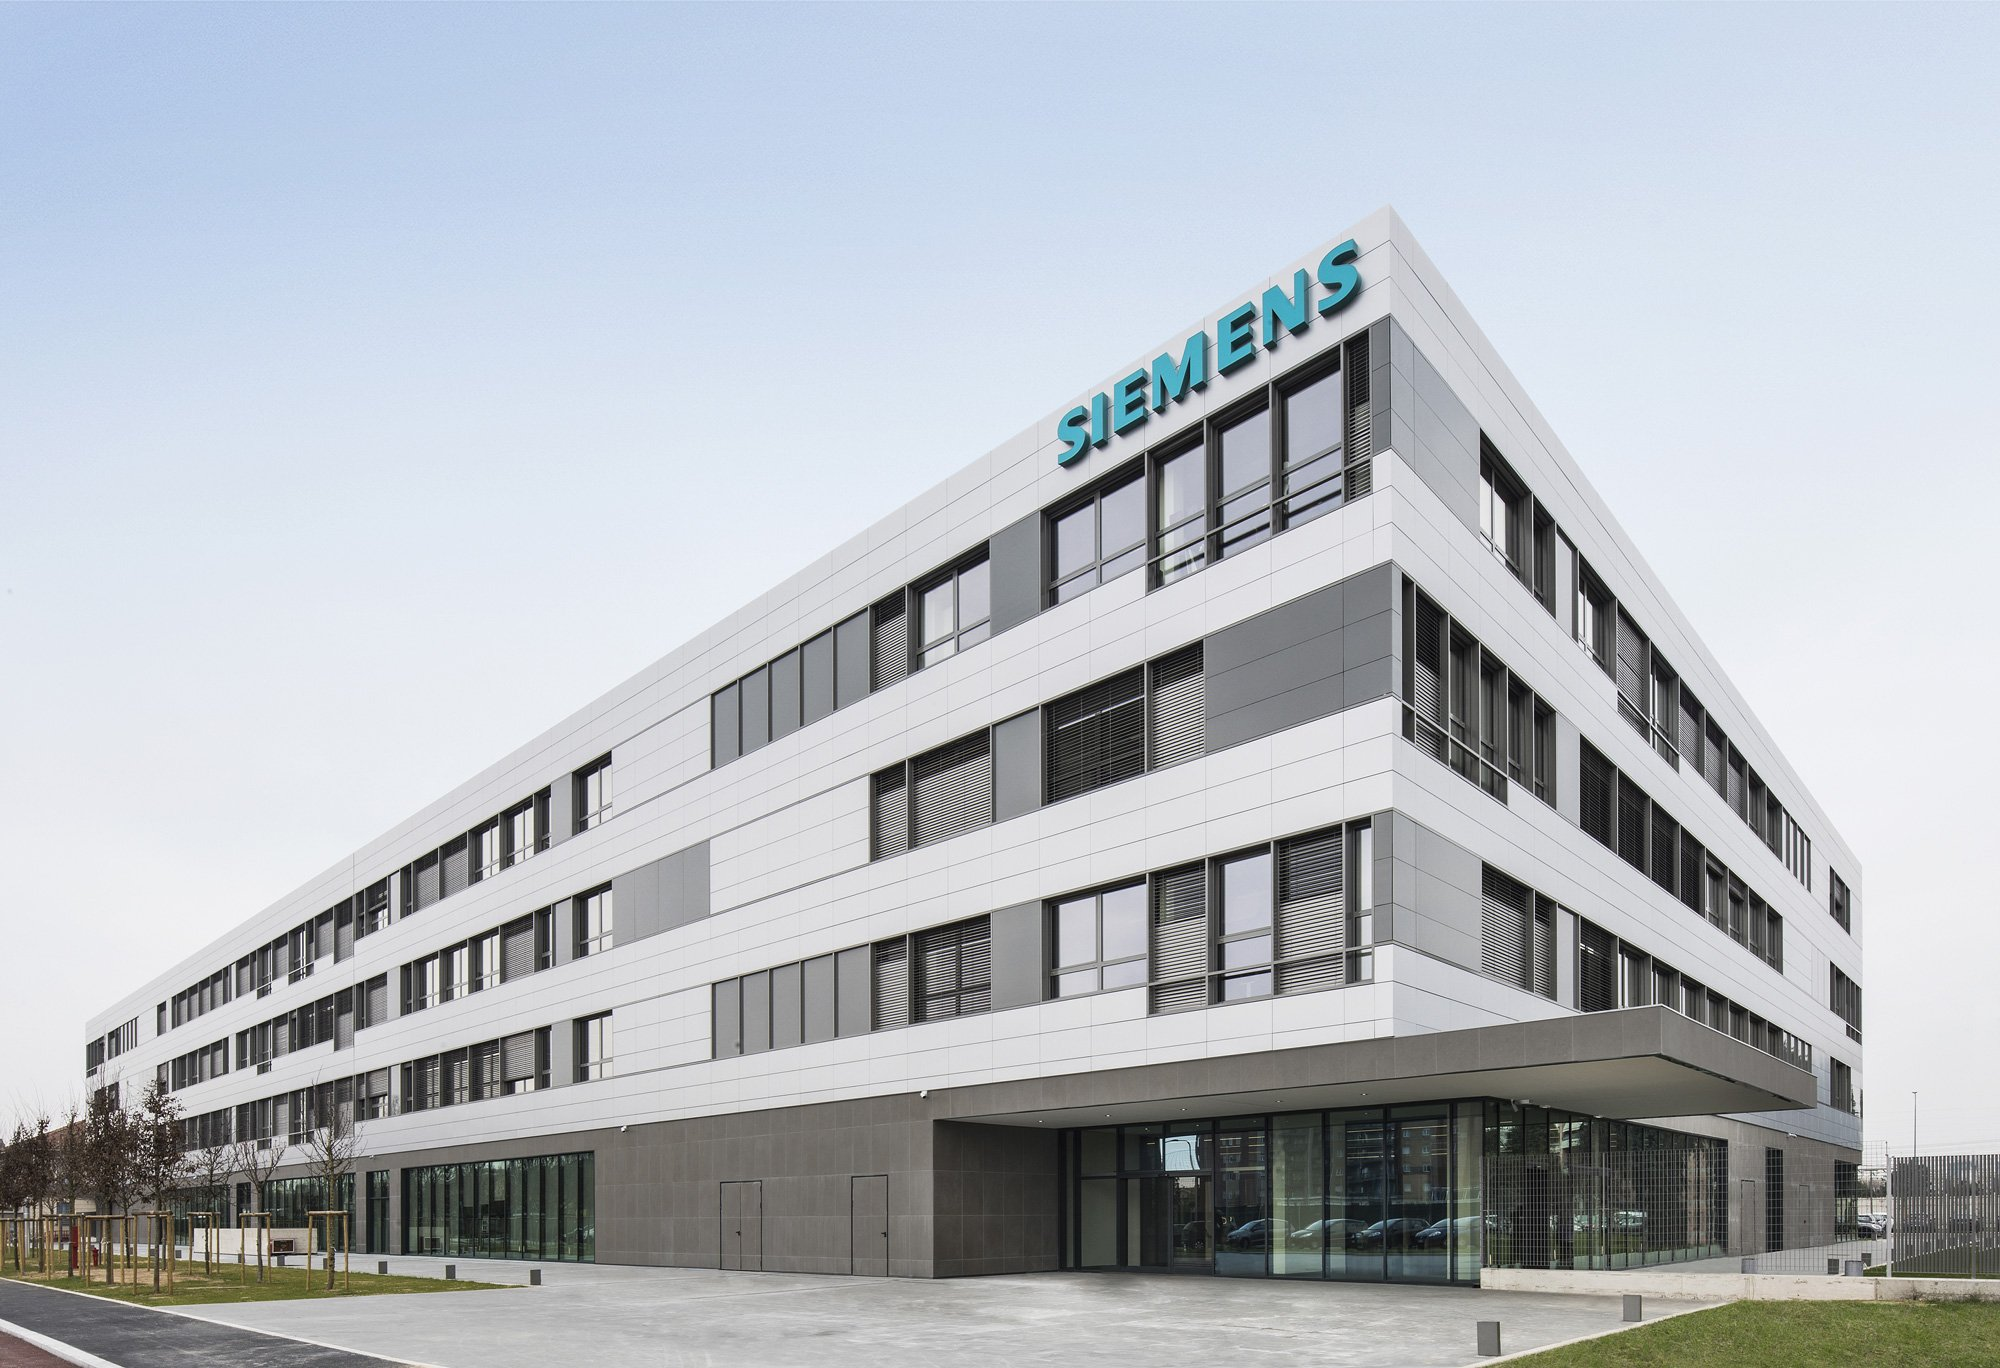 New Siemens headquarters © Carola Merello